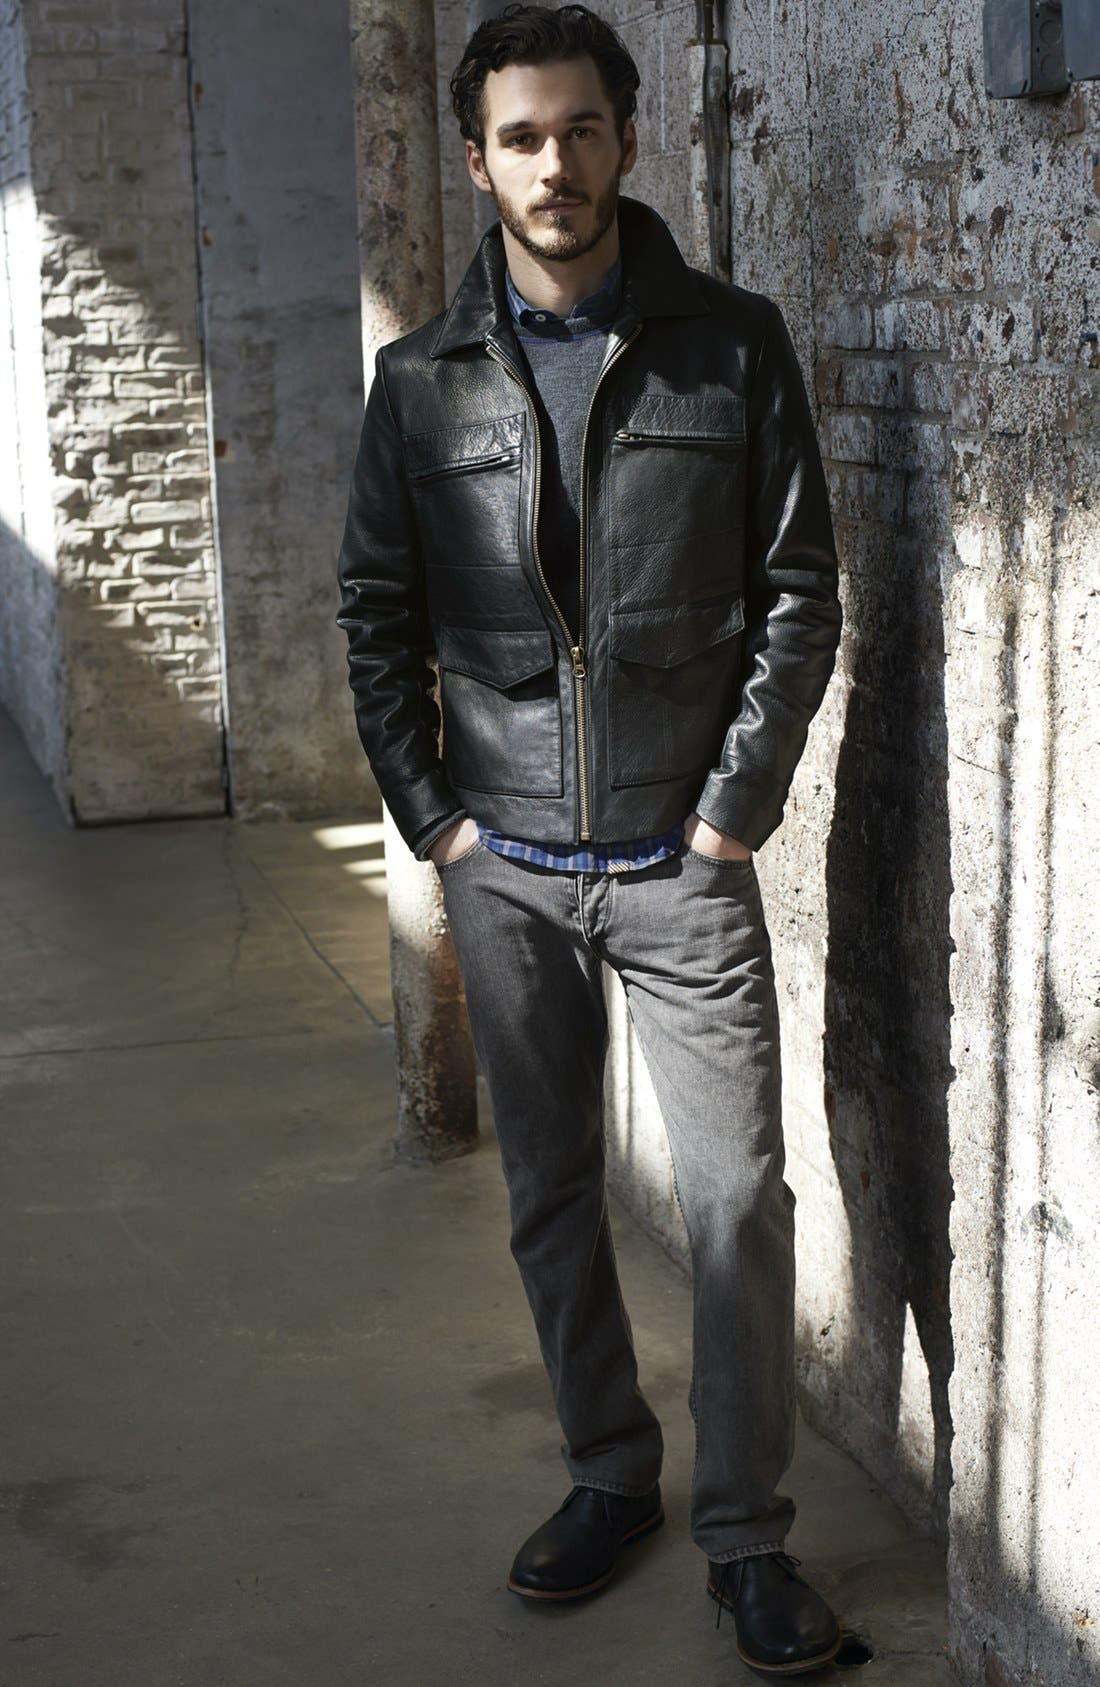 Alternate Image 1 Selected - Billy Reid Leather Jacket, Sweatshirt & rag & bone Jeans